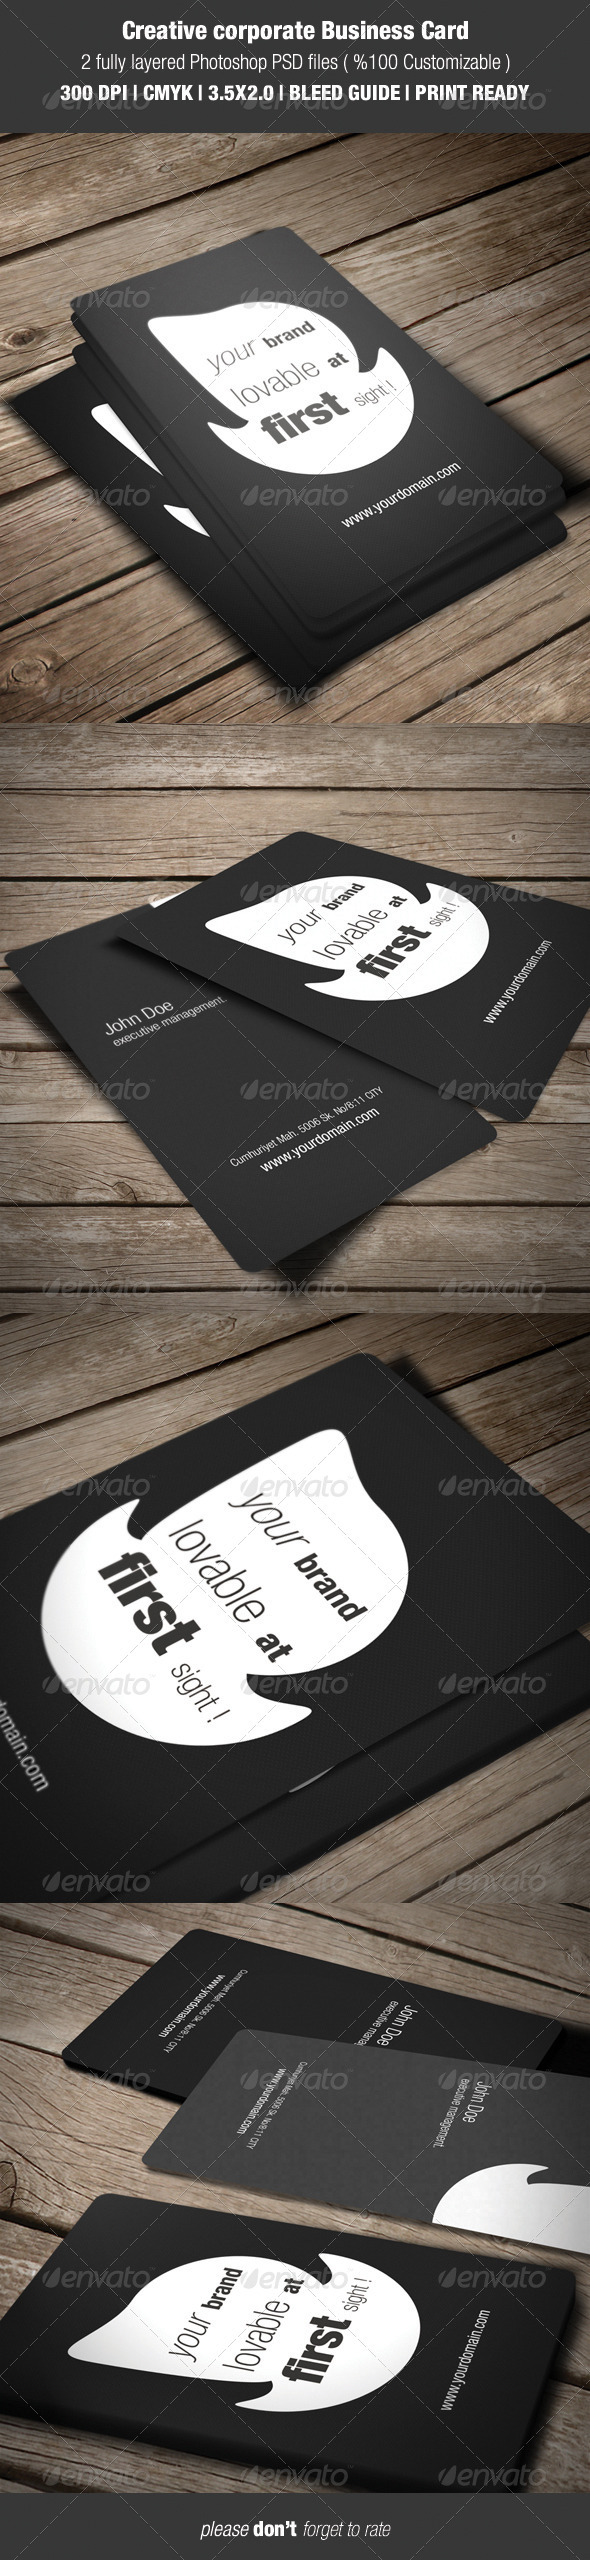 GraphicRiver Creative Corporate Business Card 3598466